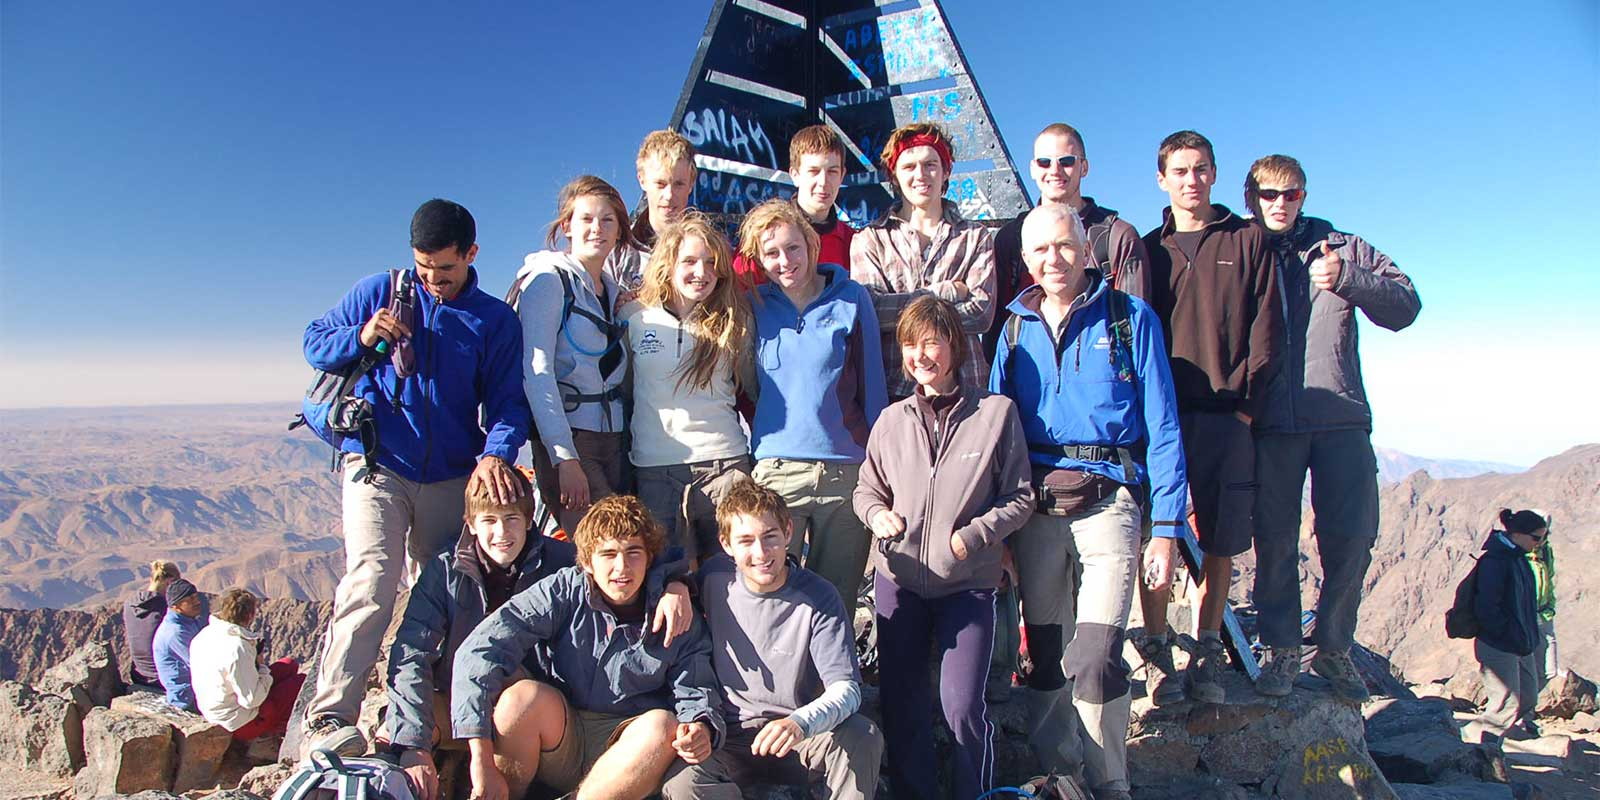 School group at the summit of Mount Toubkal